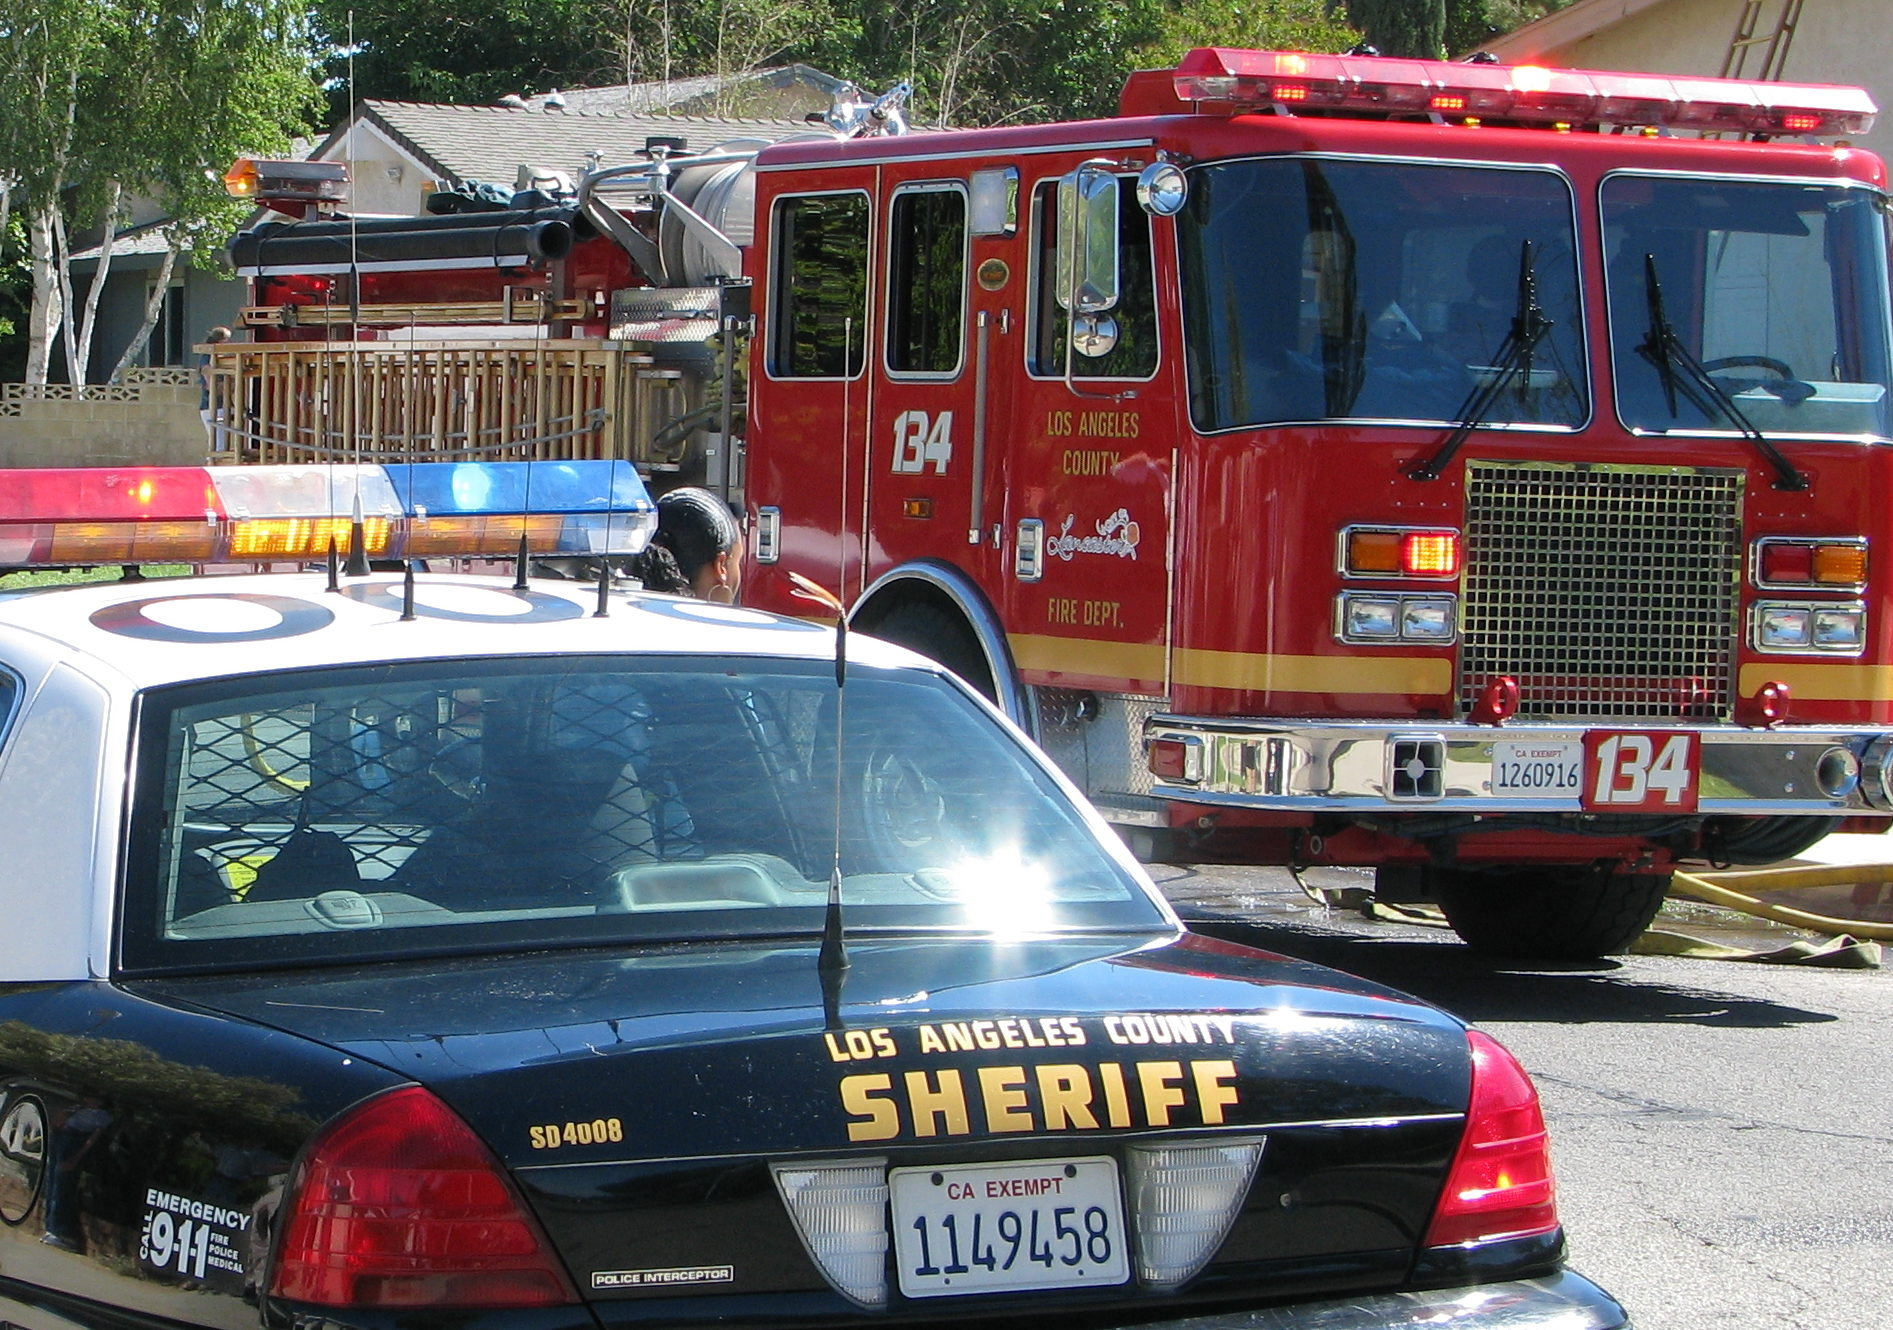 Sheriff and Fire Department (credit: Rennett Stowe/cc)